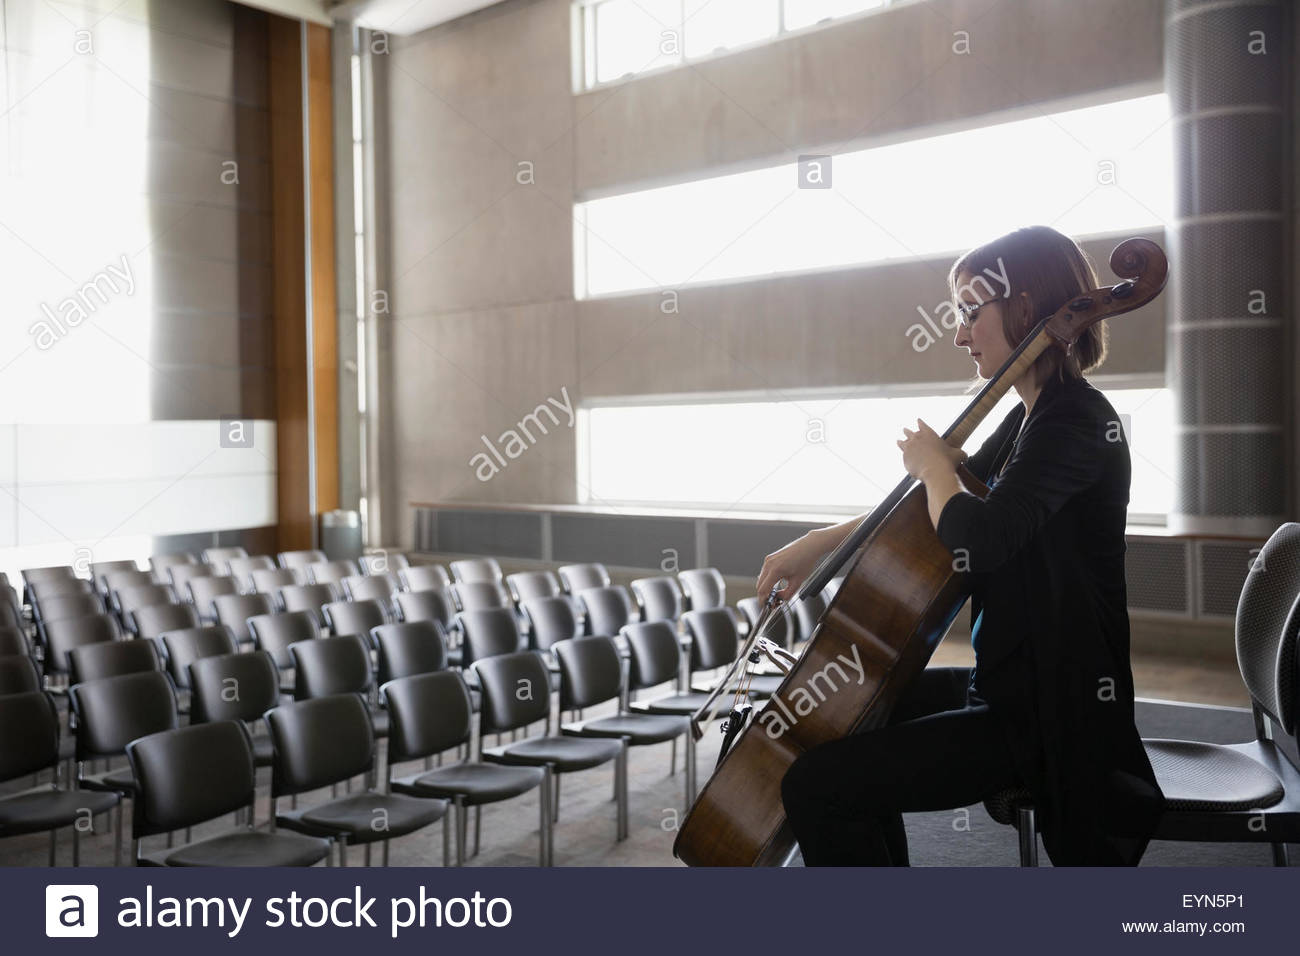 Female cellist practicing on stage in empty auditorium - Stock Image